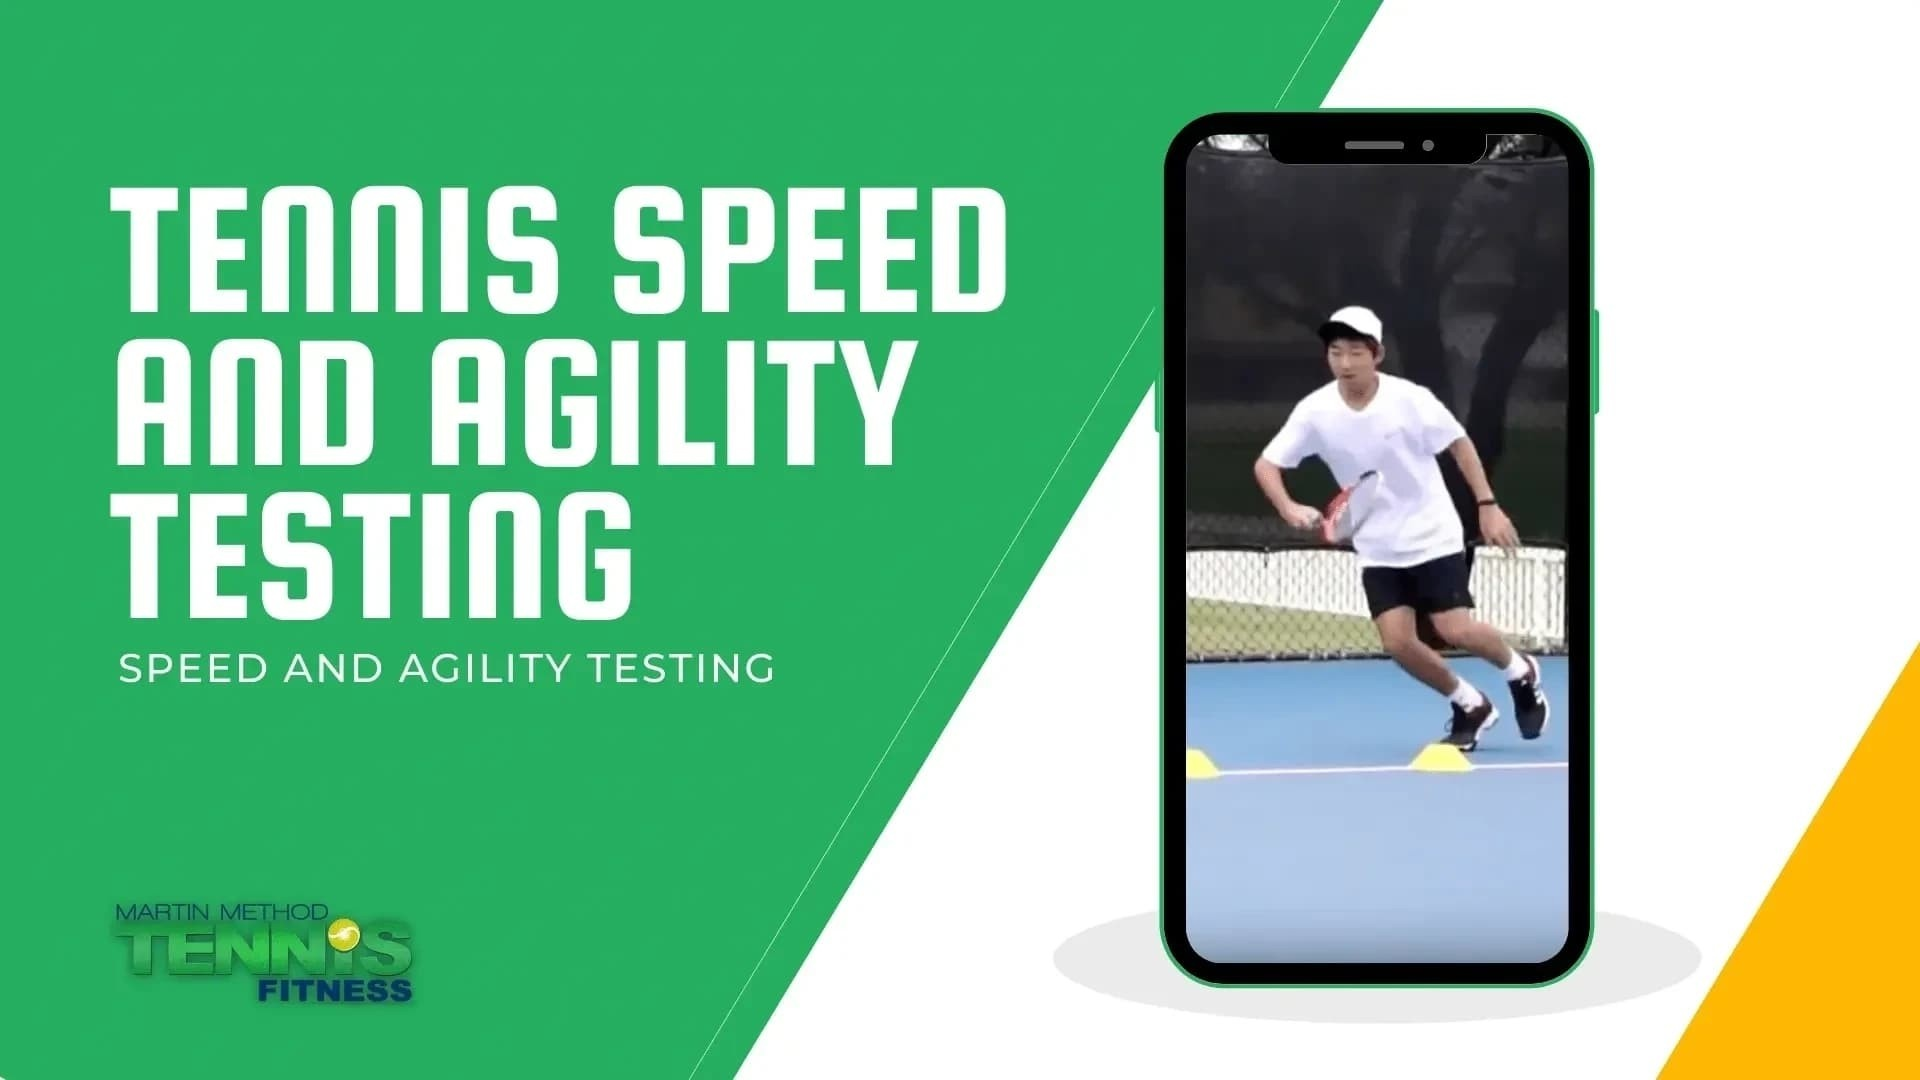 TENNIS SPEED AND AGILITY TESTING